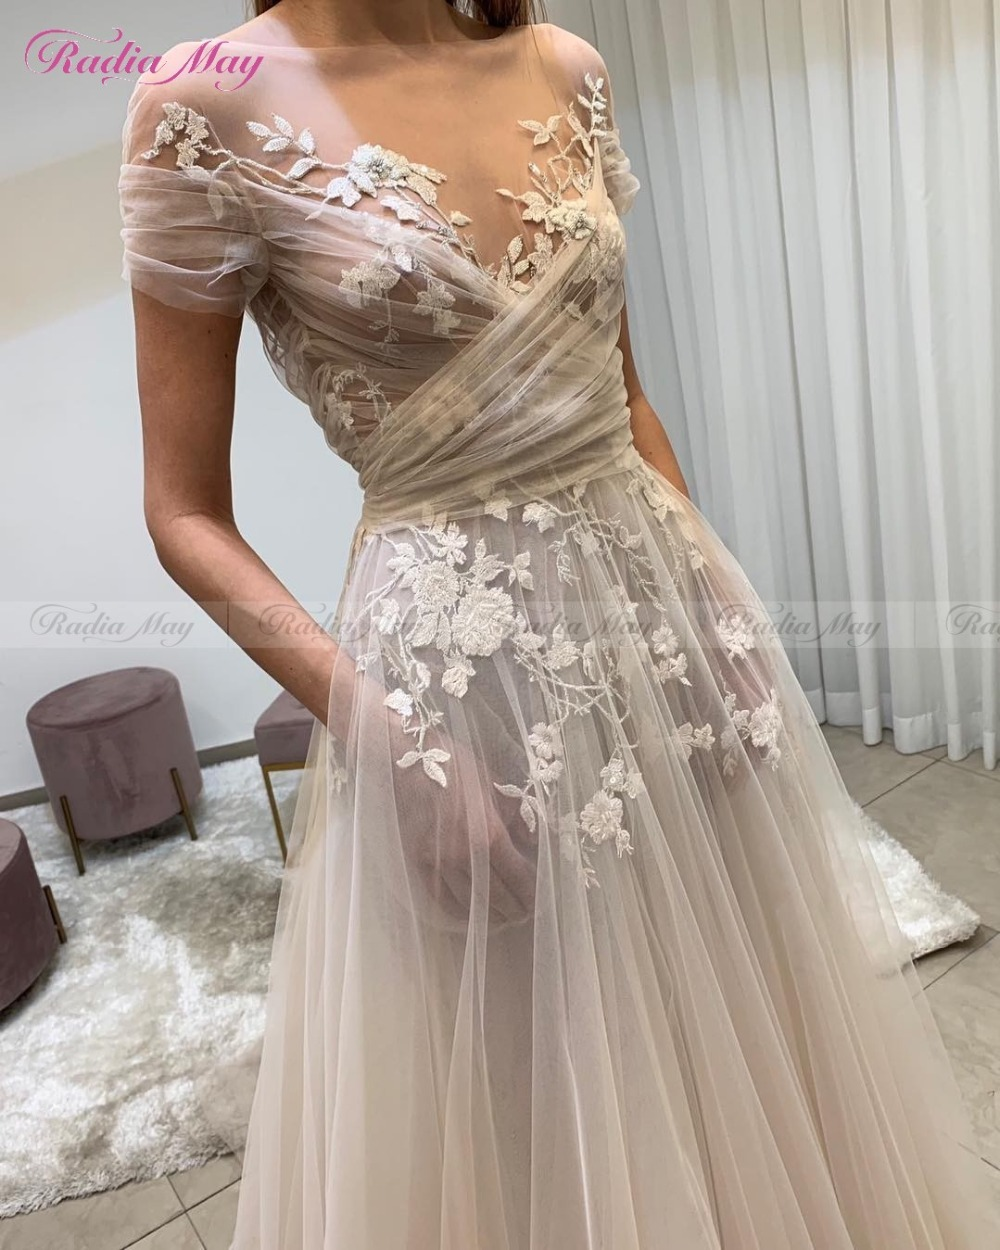 Vintage Lace Embroidery Wedding Dress With Pockets Illusion Boat Neck Bobo Beach Brides Dresses 2019 Vestido De Noiva Praia New